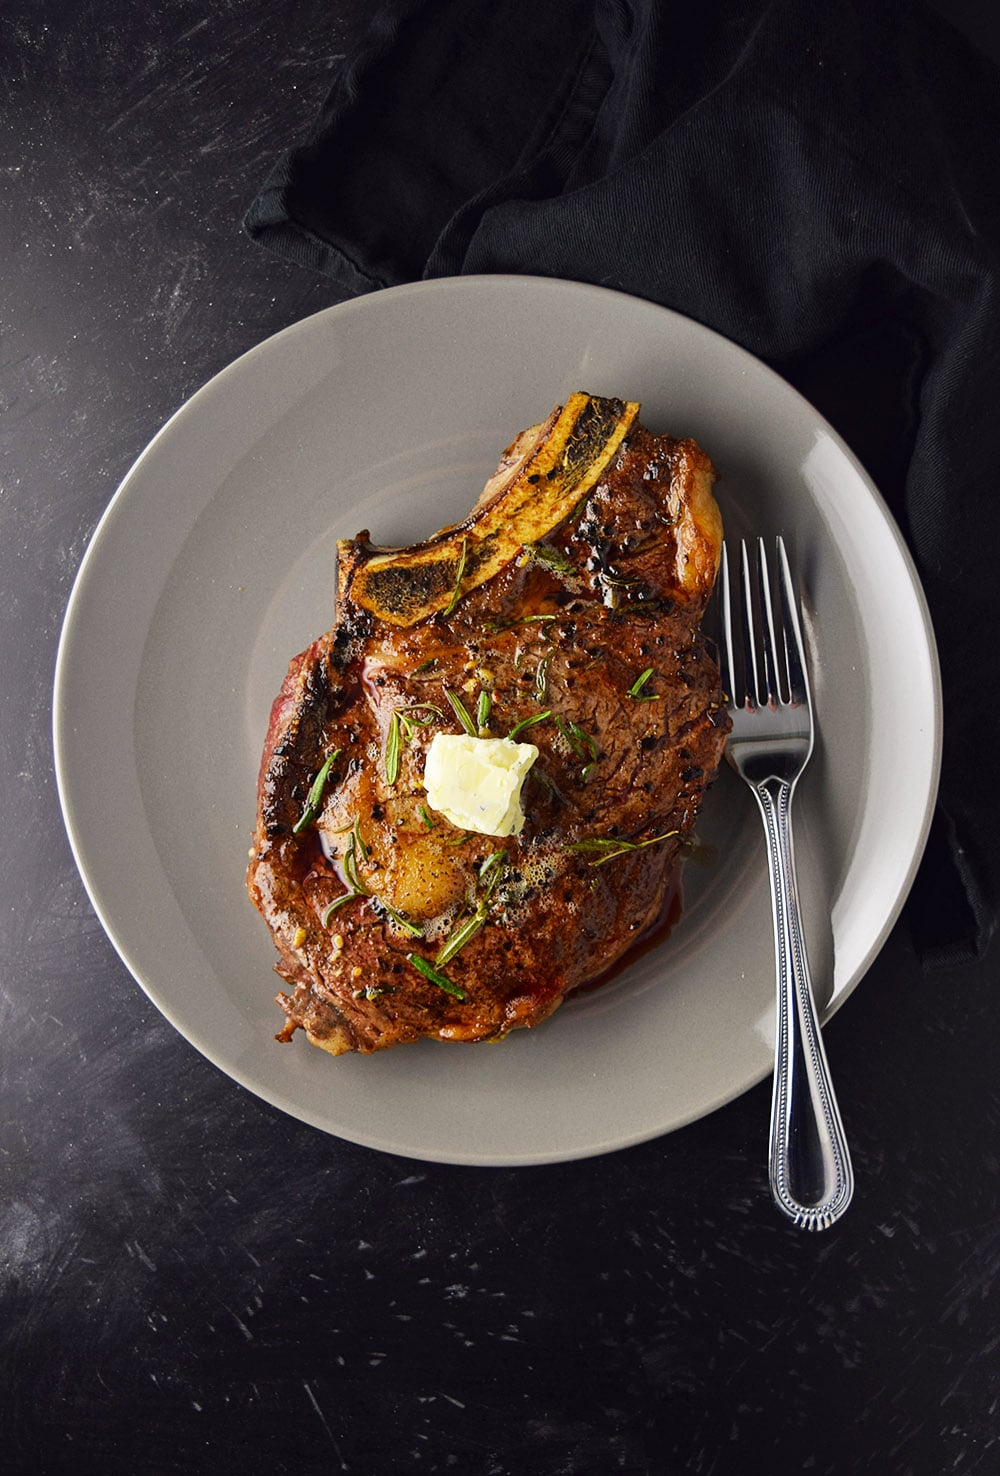 Pan-Seared Ribeye Steak with Blue Cheese Butter Recipe